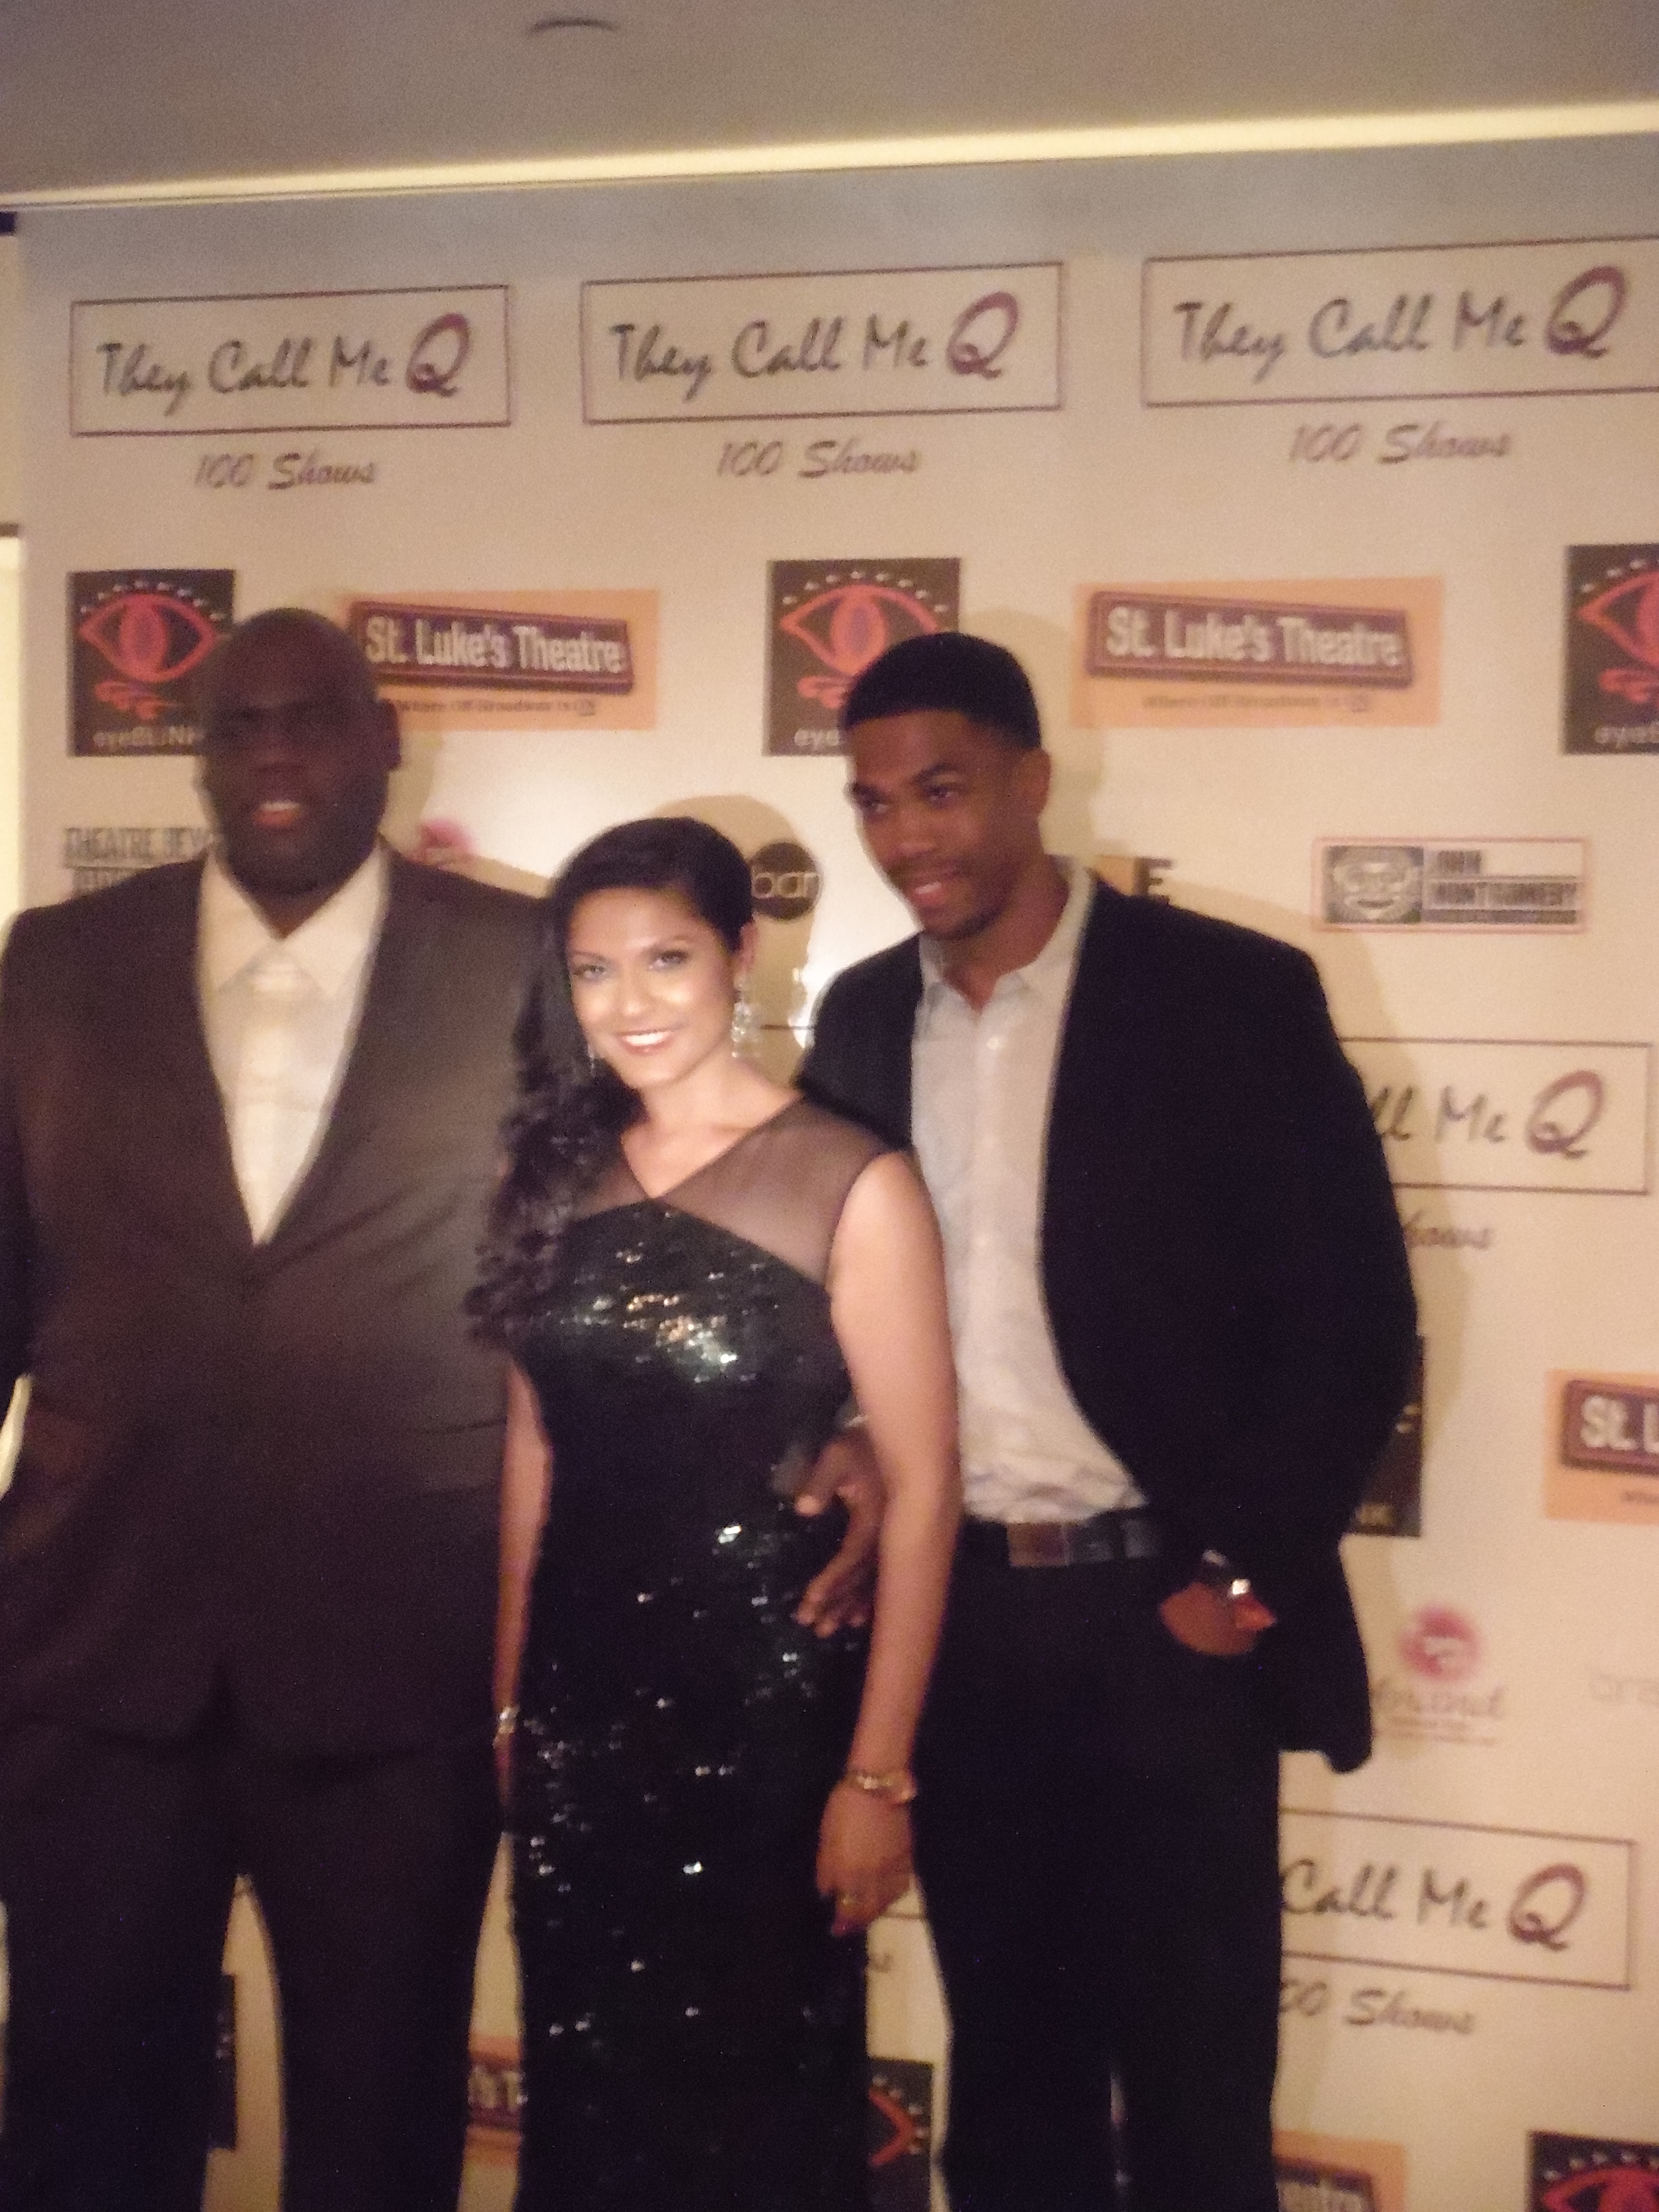 They Call Me Q 100th Show Party 187.JPG